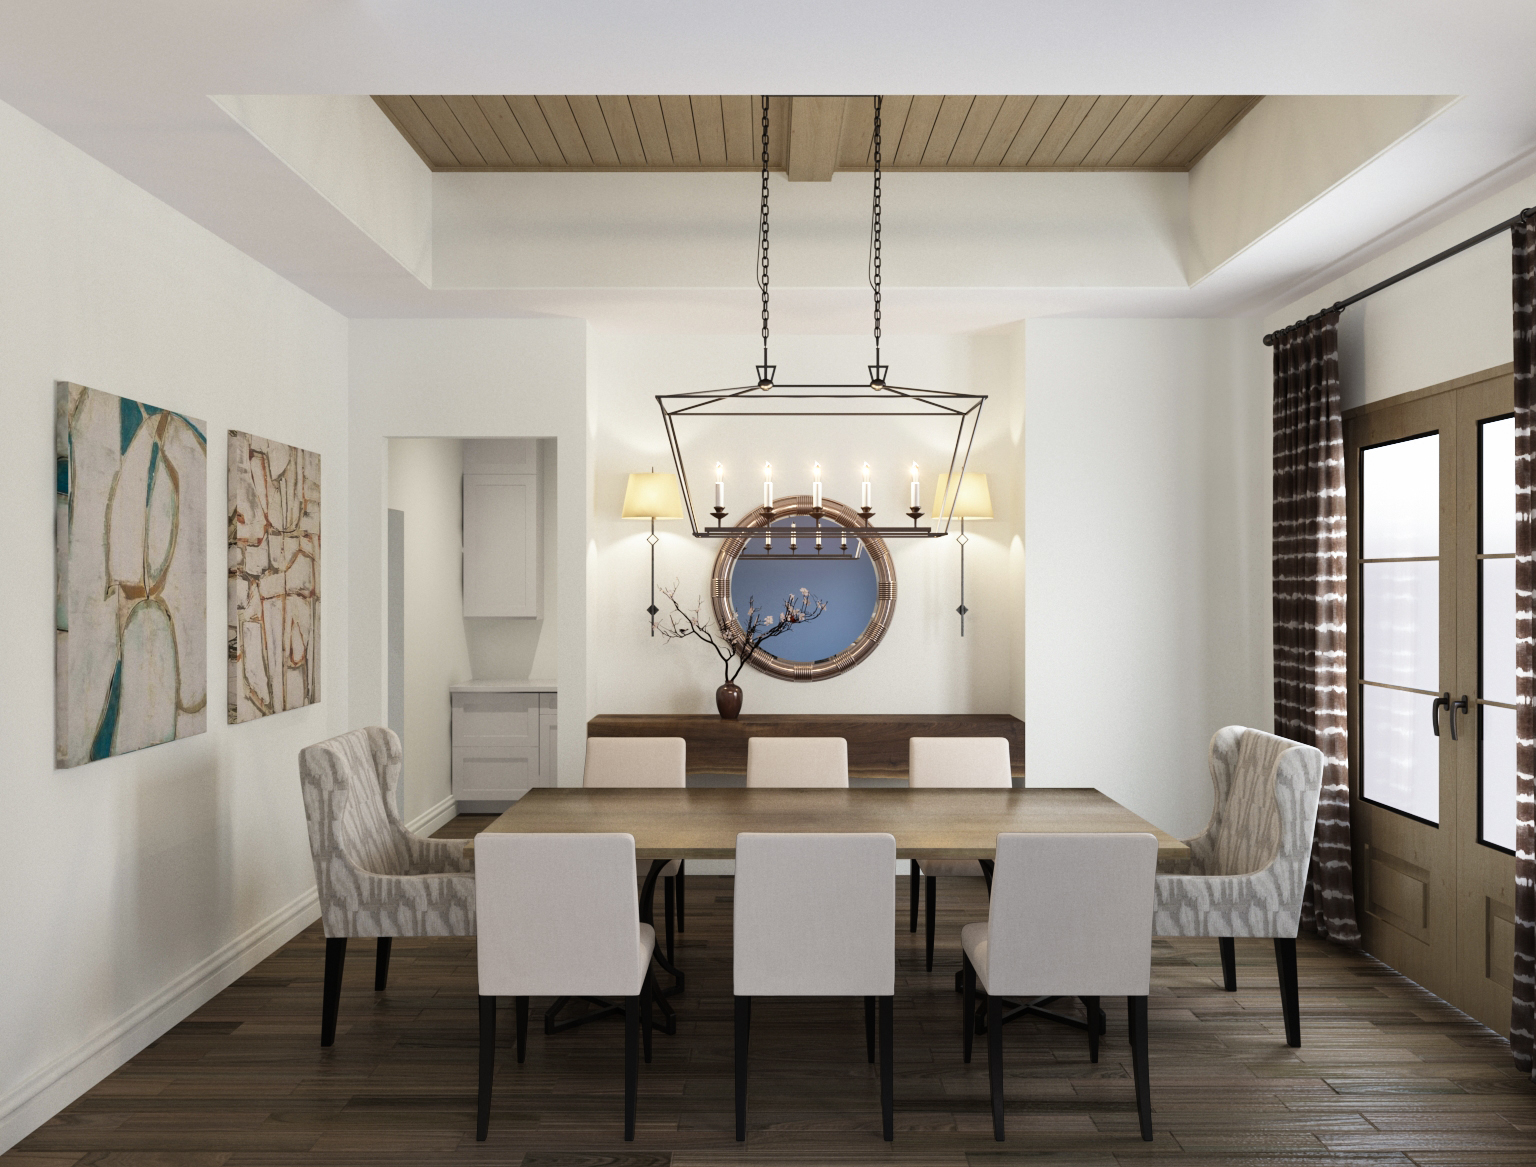 Dining room with wood ceiling and tall French doors | Carla Aston, Designer | Shebin Poothery, Rendering #diningroom #woodceiling